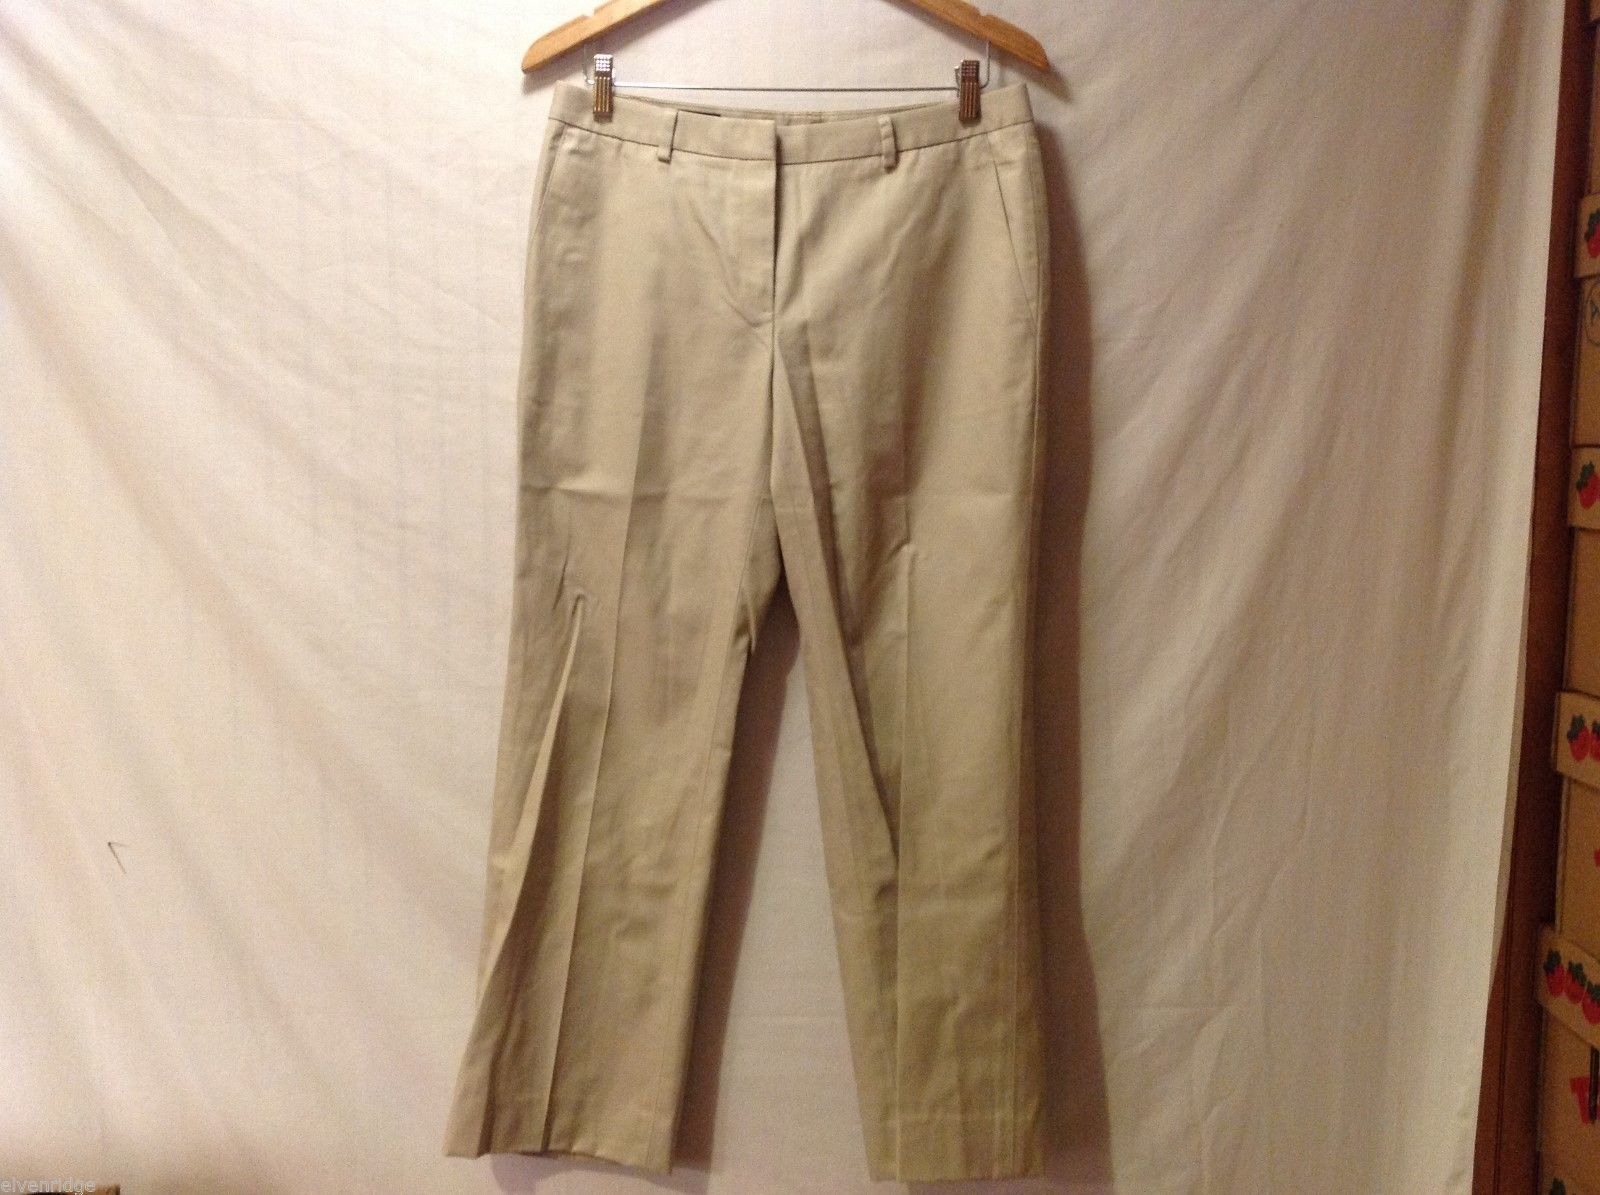 Brooks Brothers Advantage Chino Womens Khaki Dress Pants, Size 8